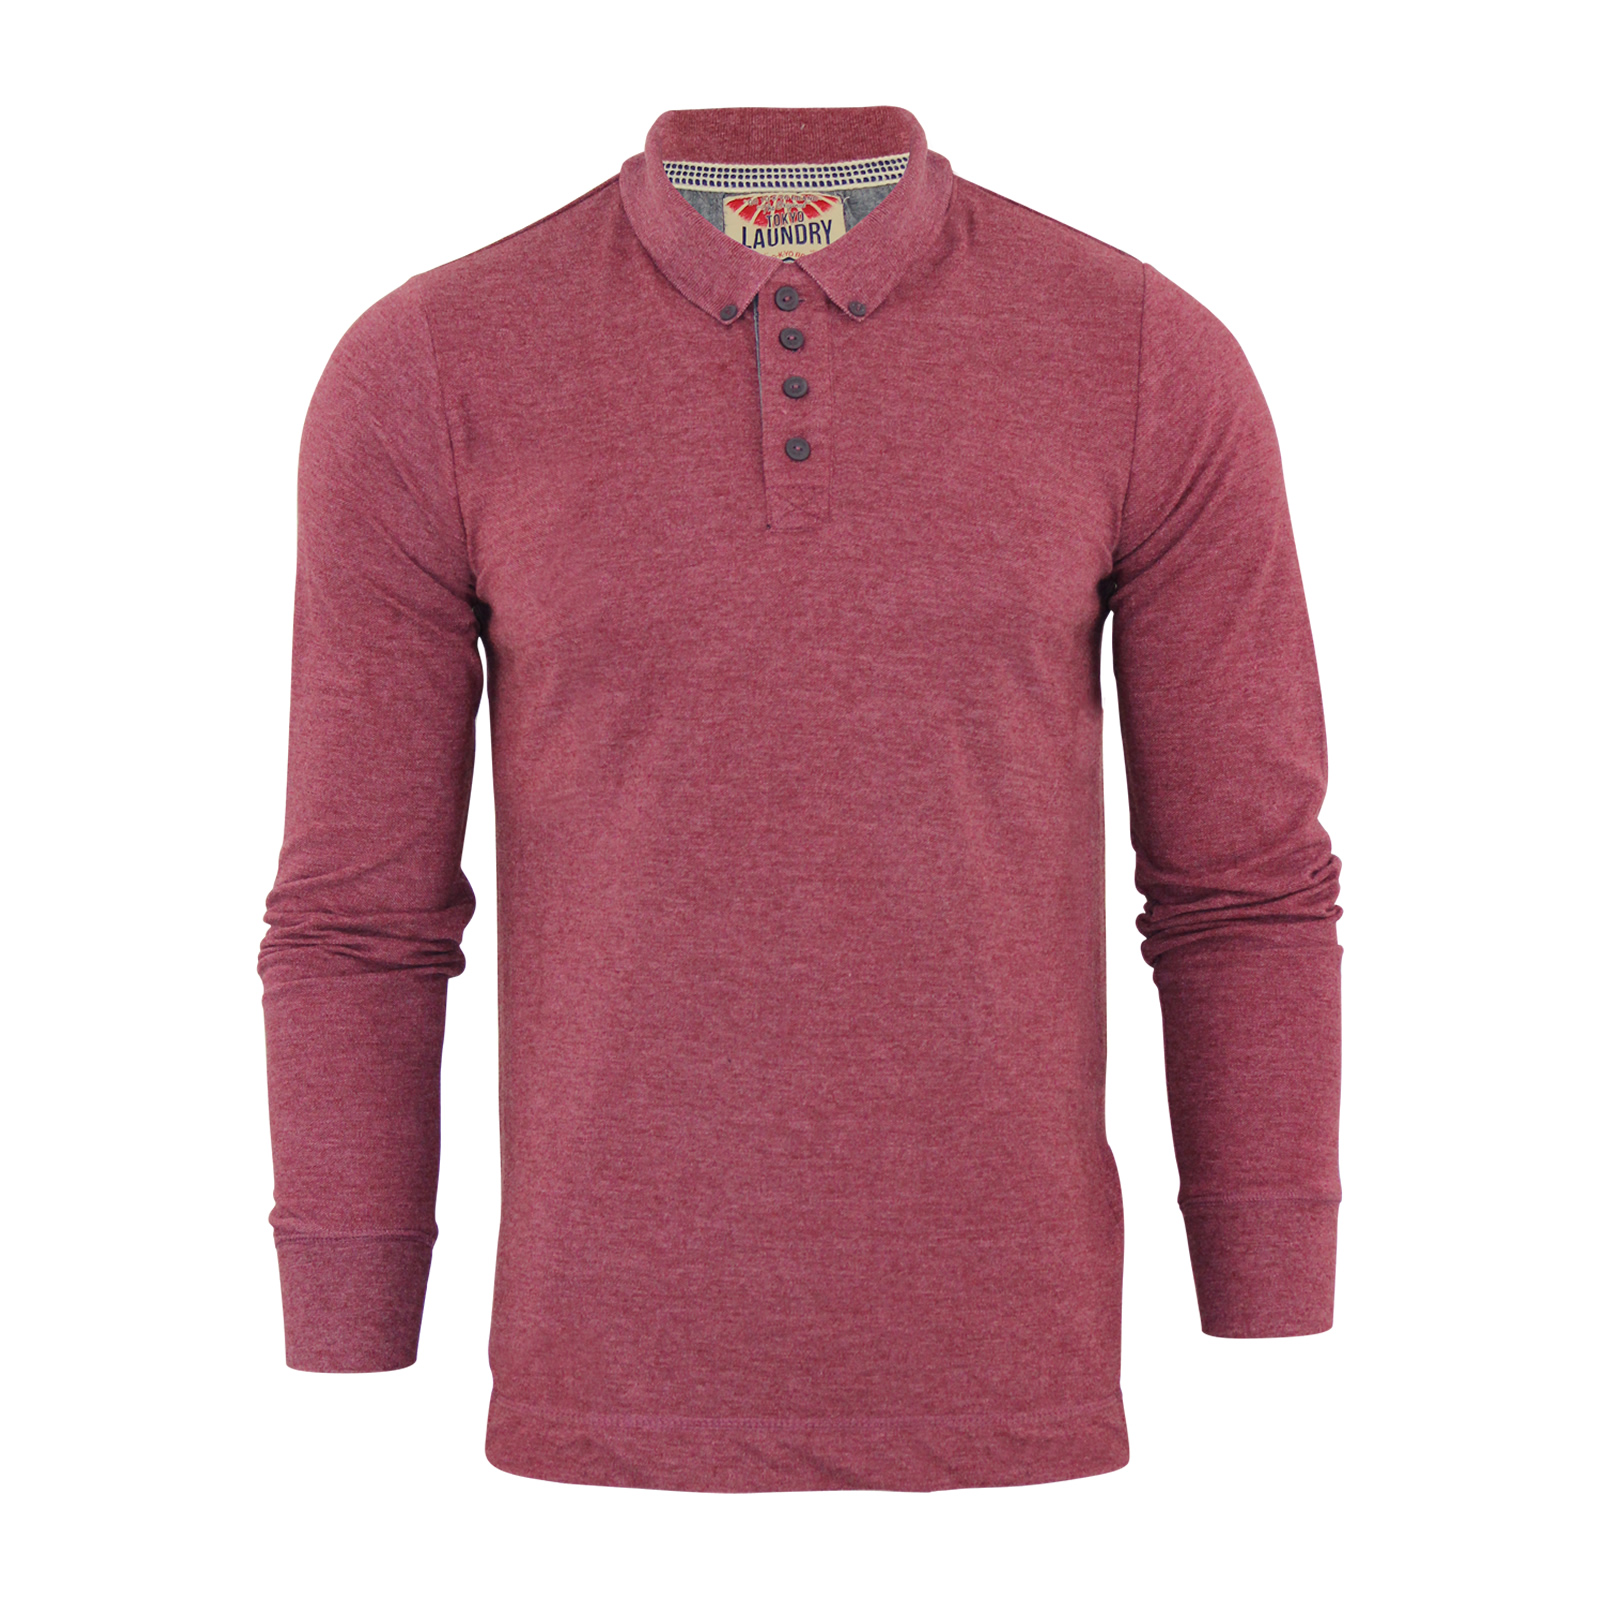 Mens polo t shirt tokyo laundry lowell cotton long sleeve for Mens long sleeve casual cotton shirts